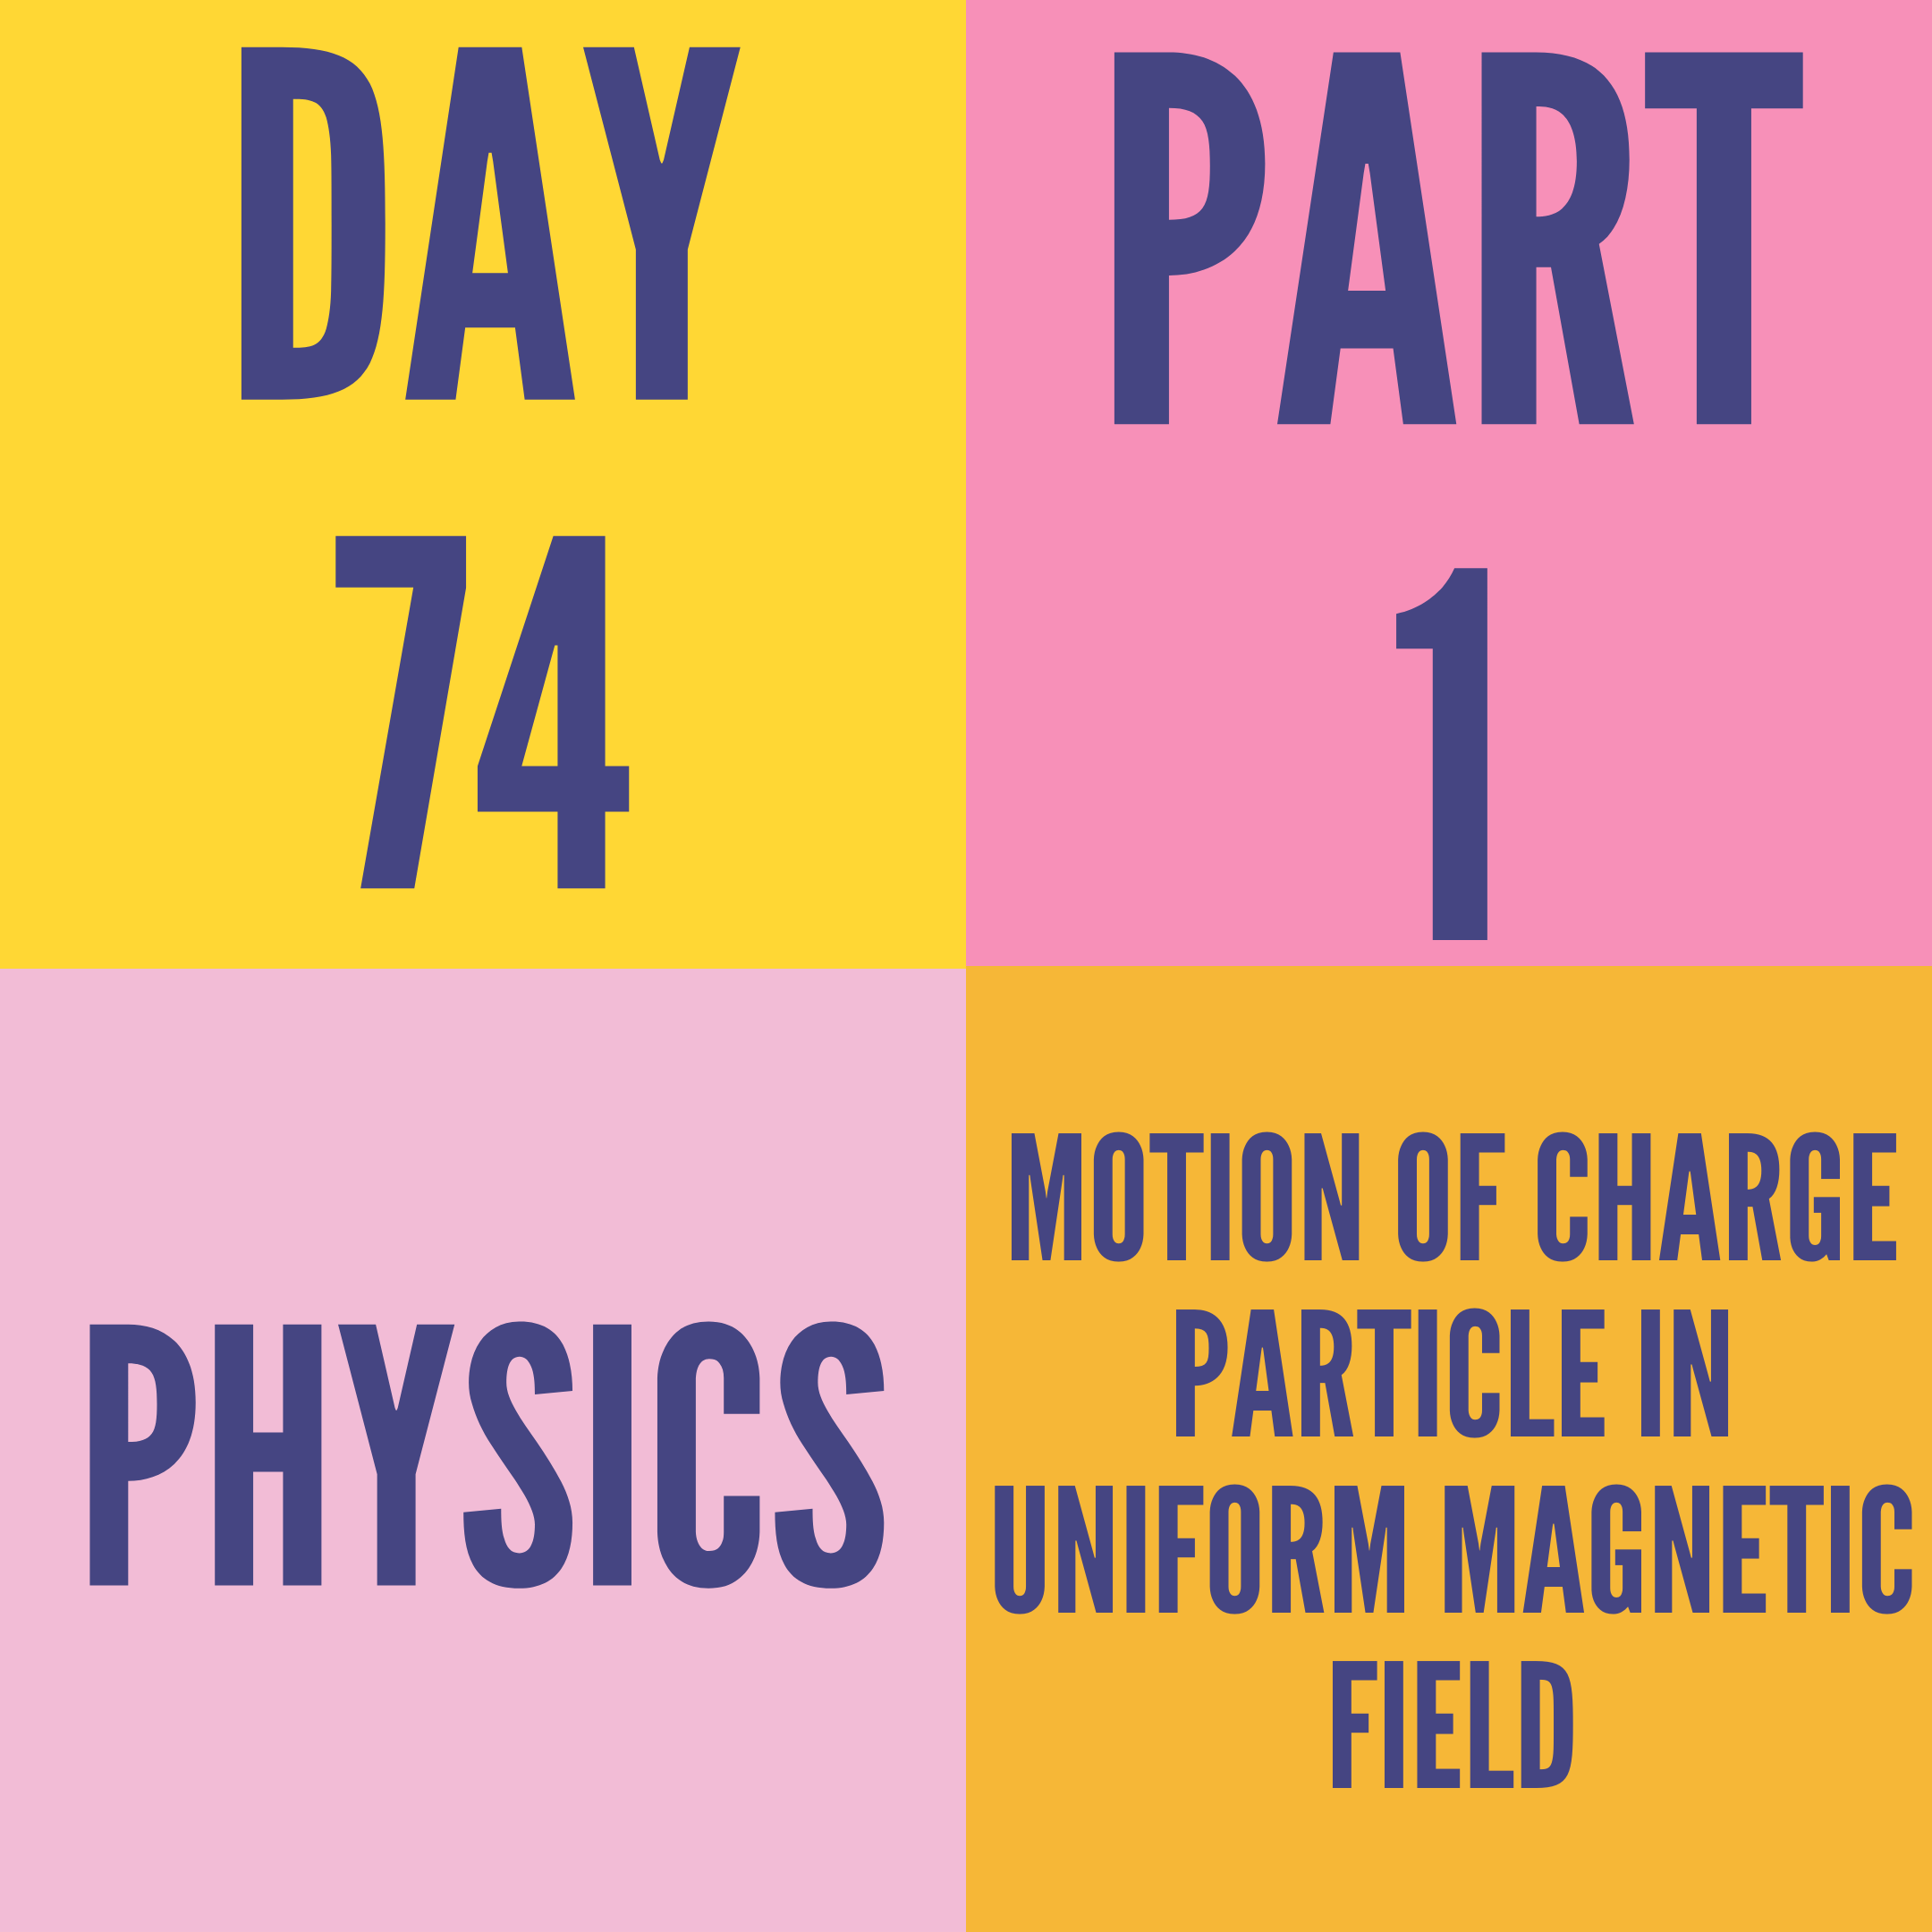 DAY-74 PART-1 MOTION OF CHARGE PARTICLE IN UNIFORM MAGNETIC FIELD